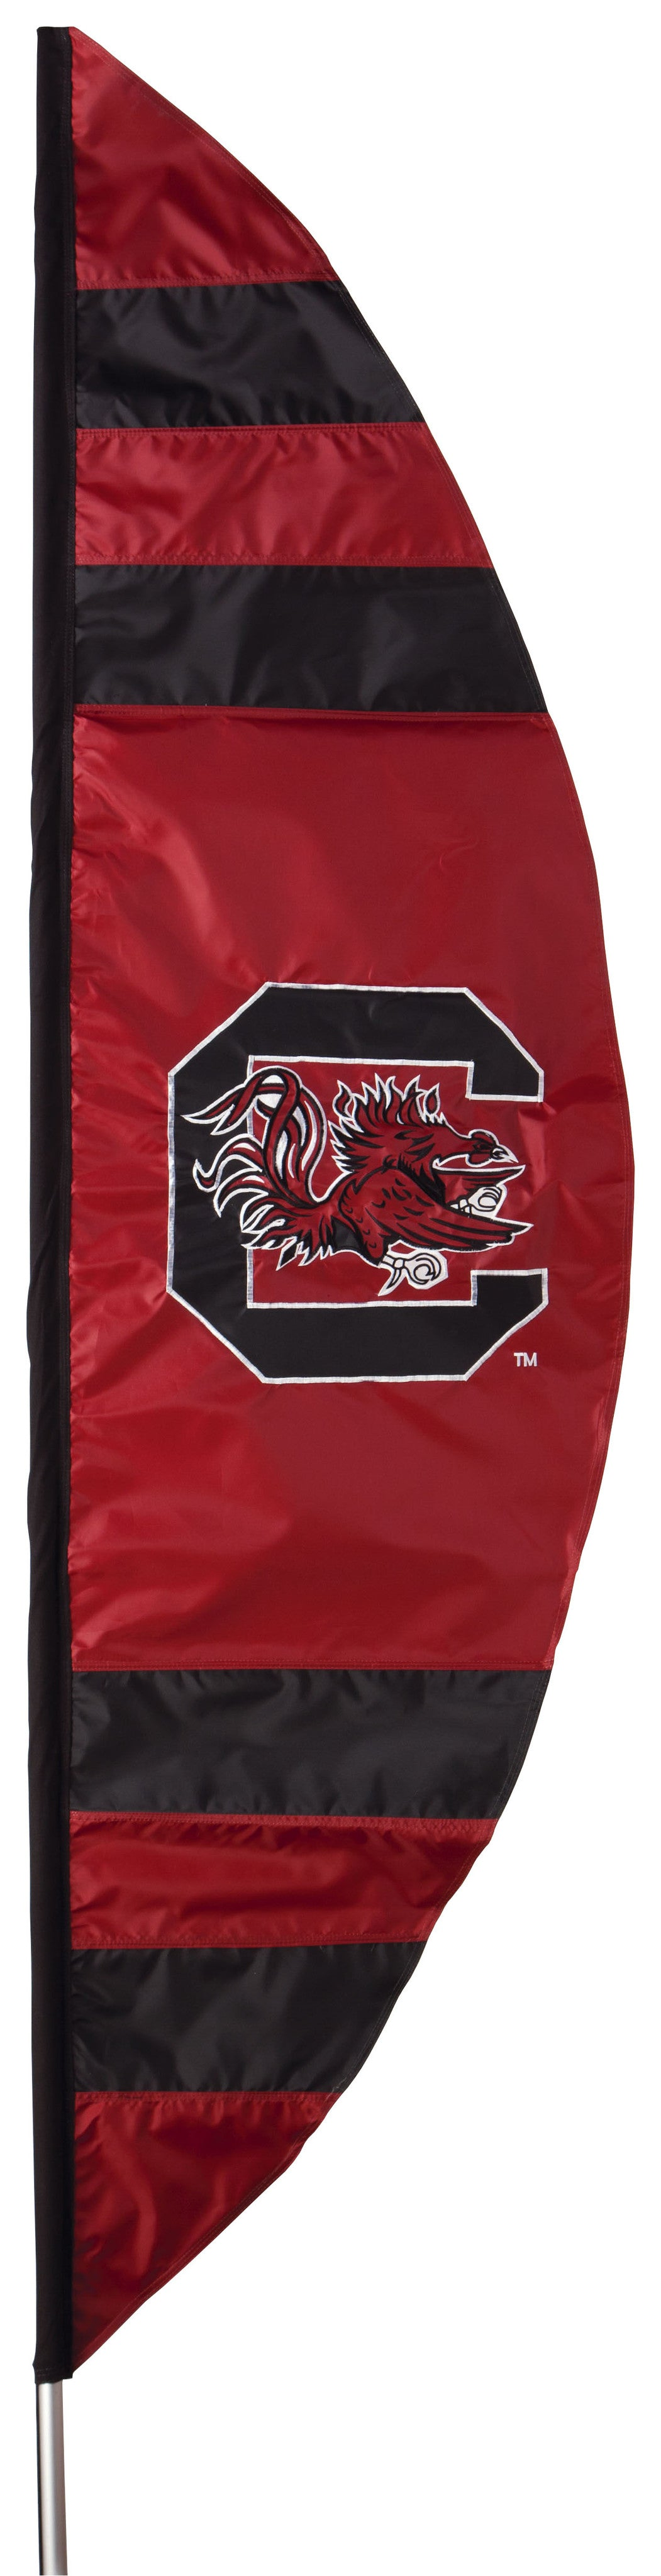 University of South Carolina Vertical Yard Banner